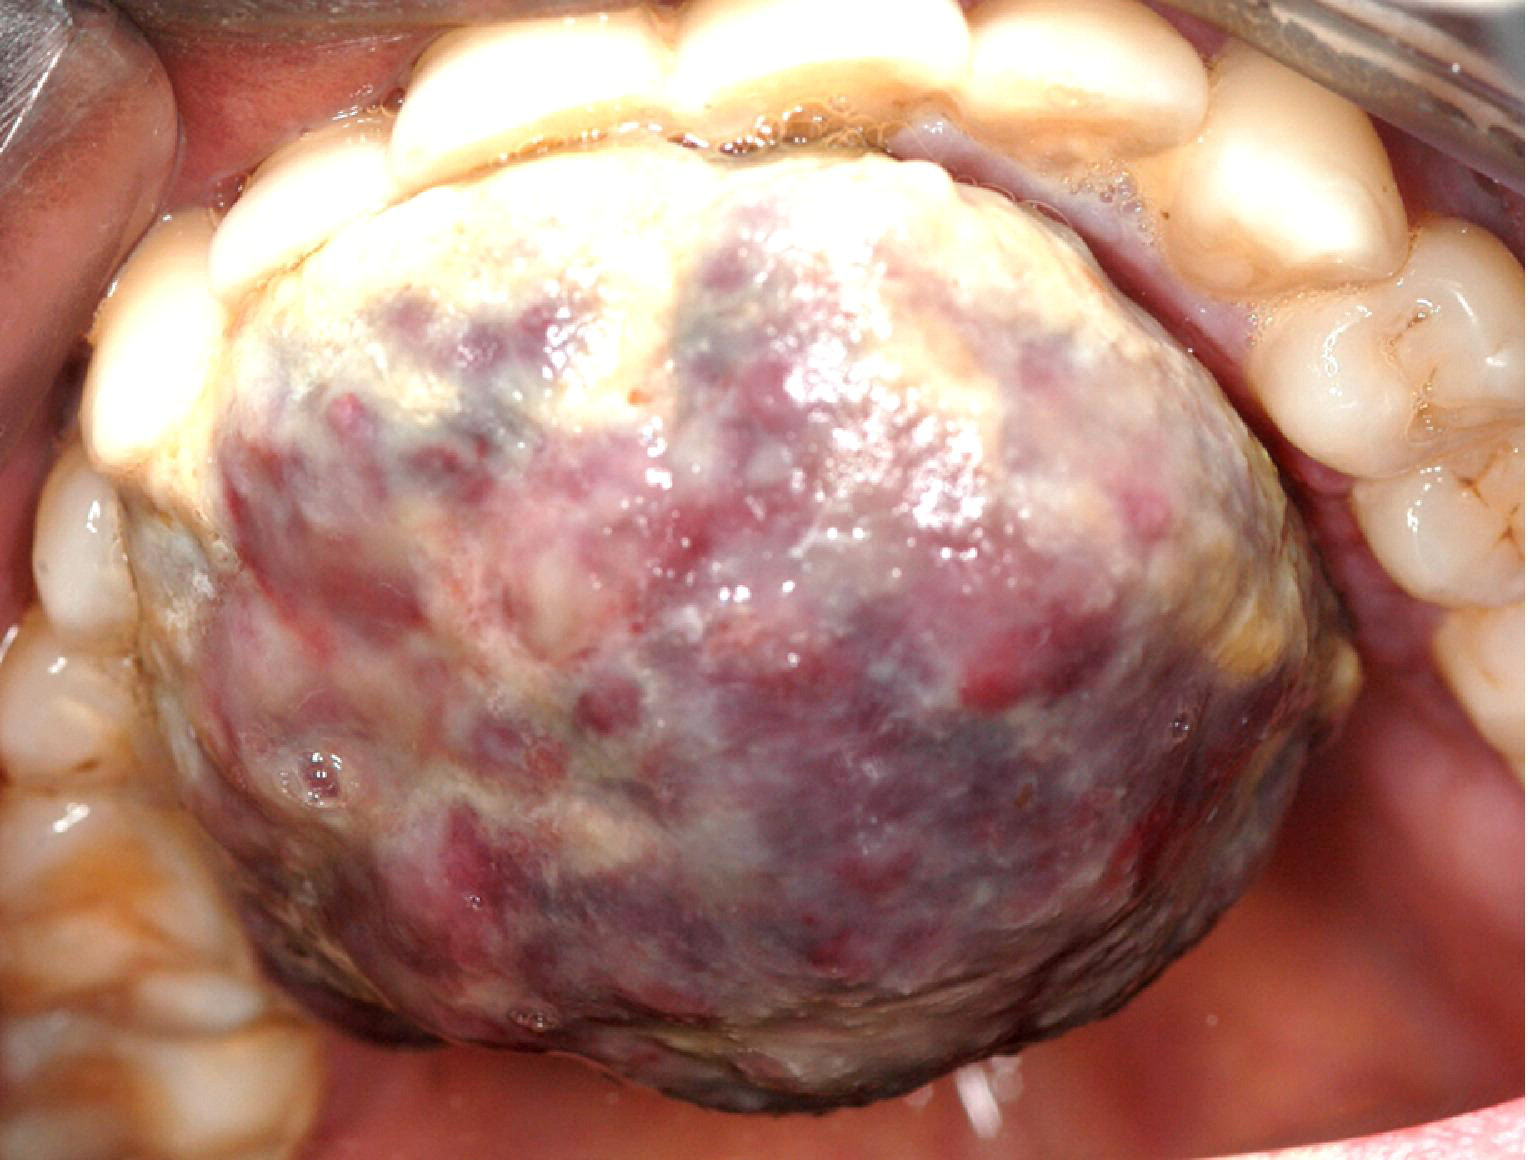 Oral Kaposi sarcoma: a case of immune reconstitution ... Kaposi Sarcoma Mouth